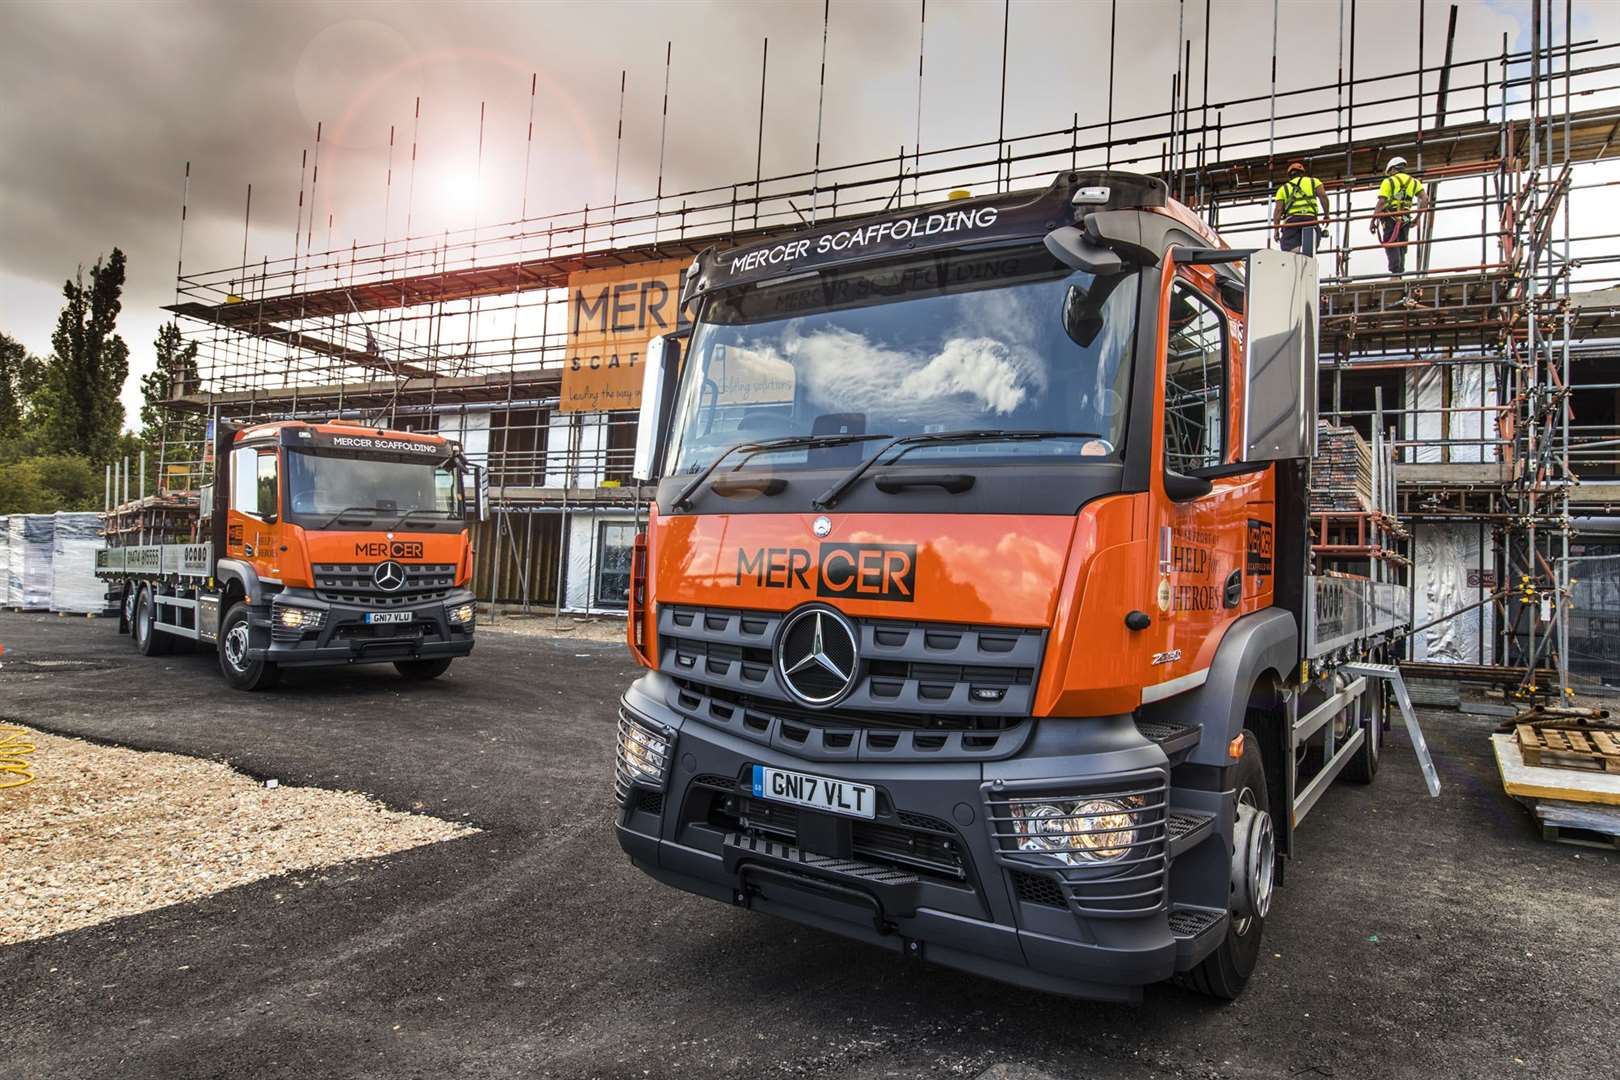 Sparshatts of Kent supplied Longfield-based Mercer Scaffolding with its first three Mercedes-Benz trucks